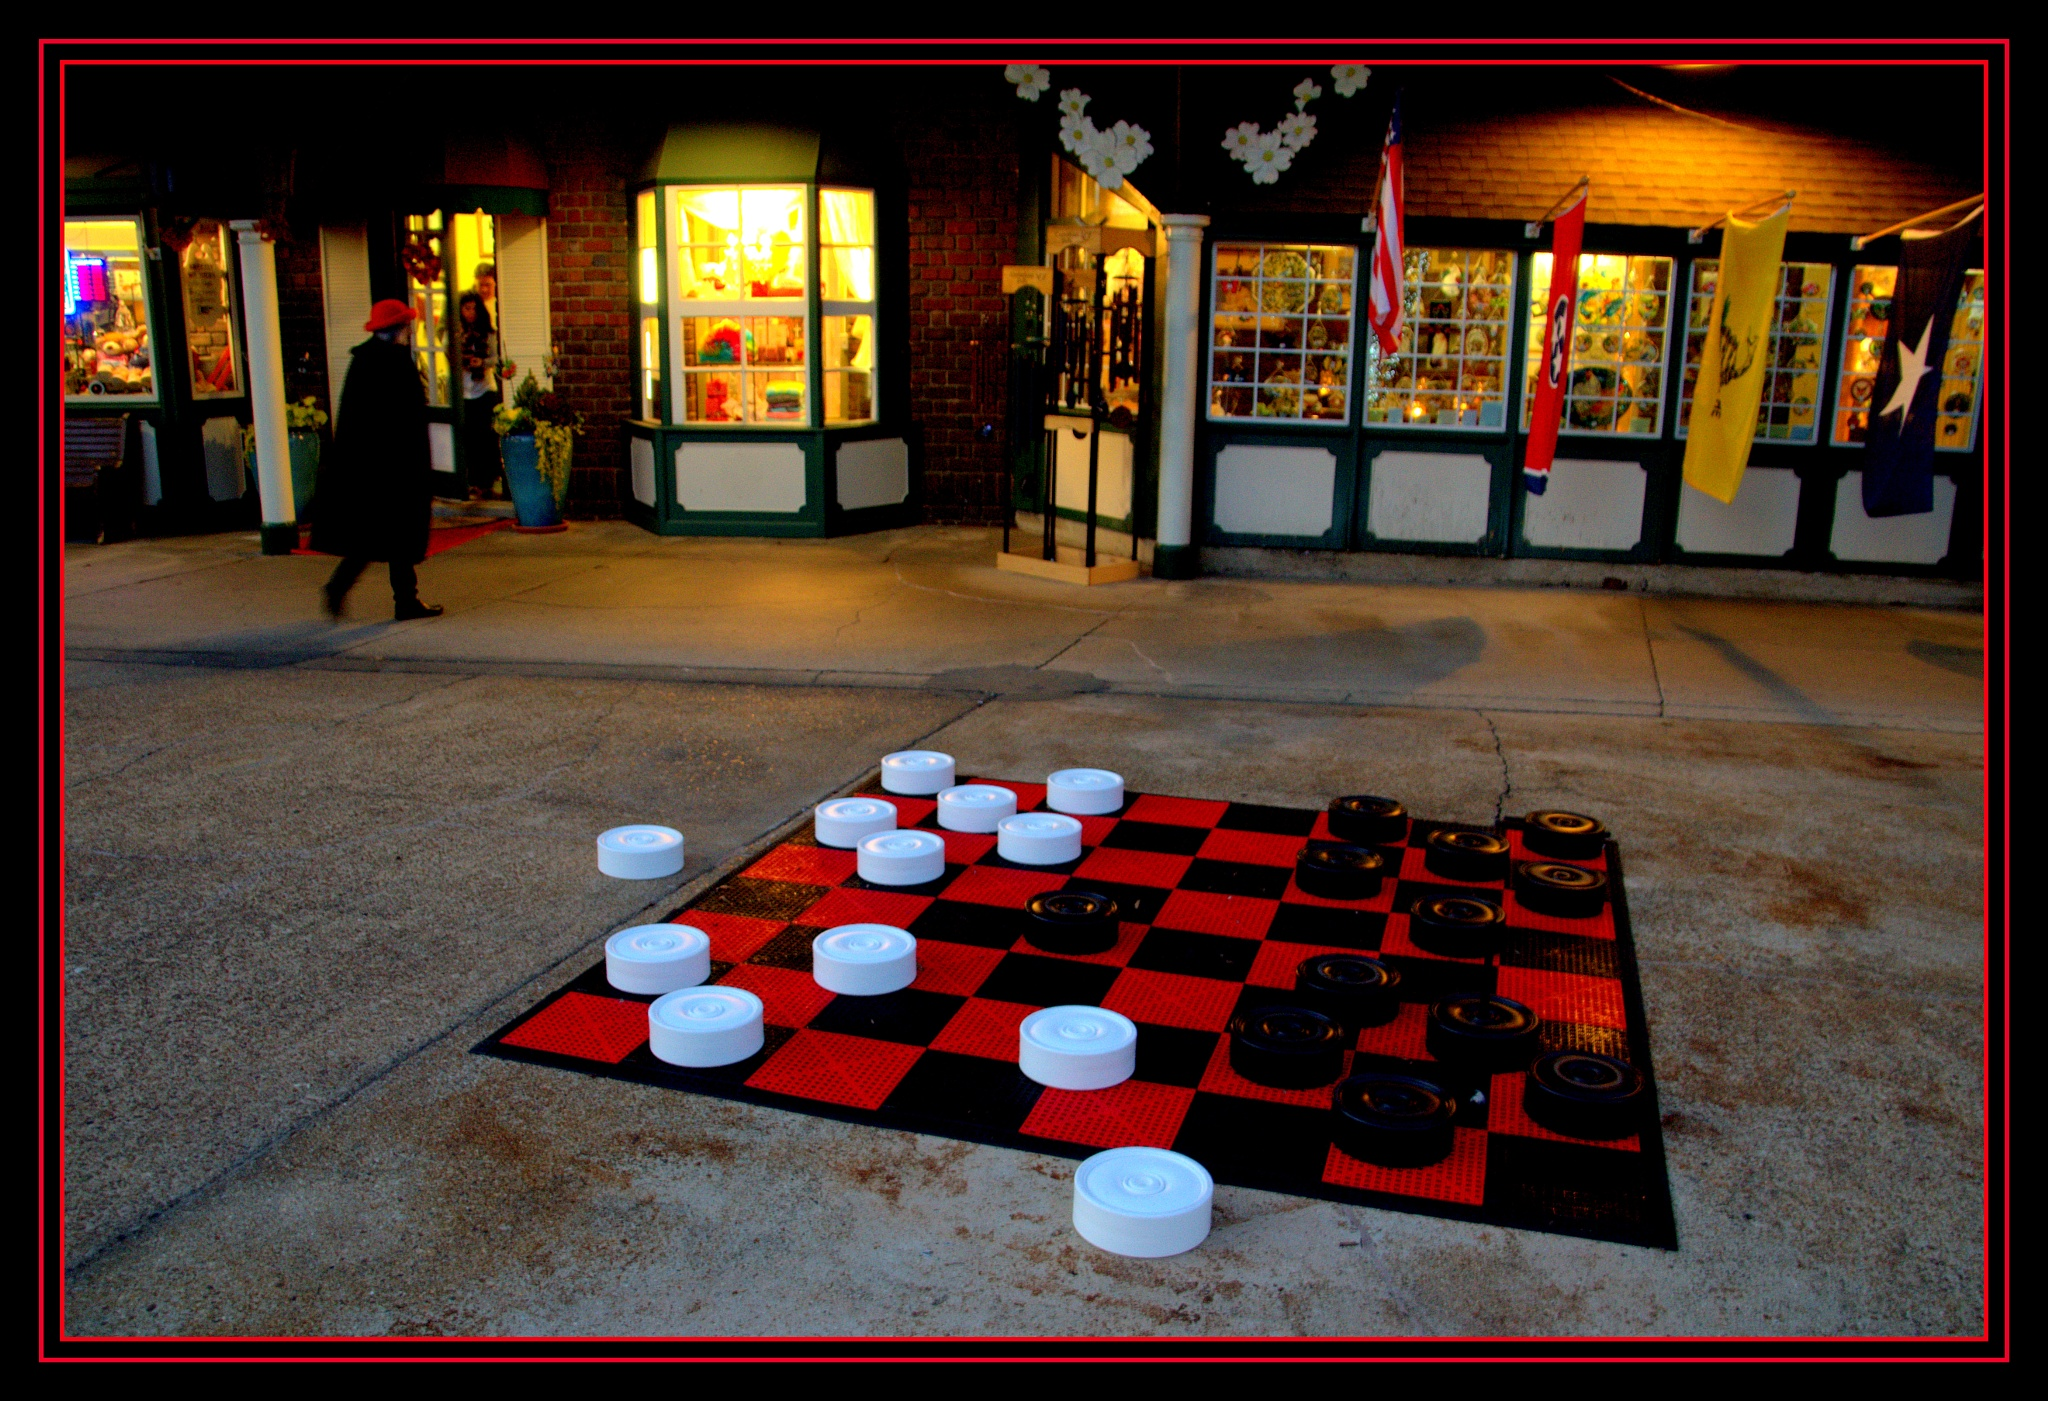 A serious game of checkers by PeterMichael